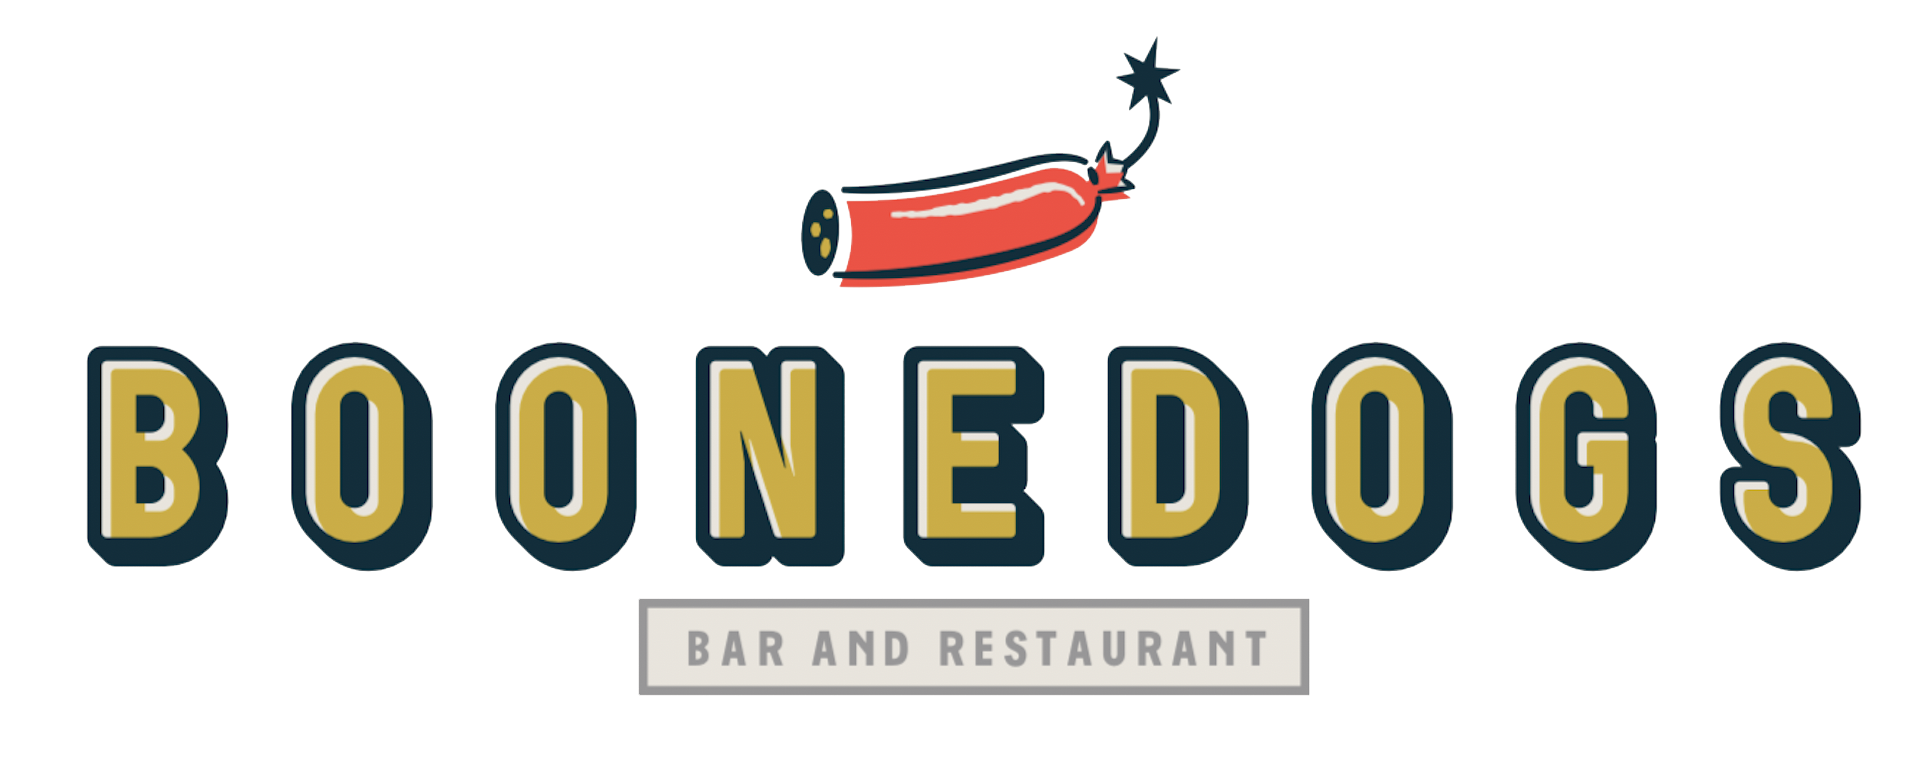 Boonedogs